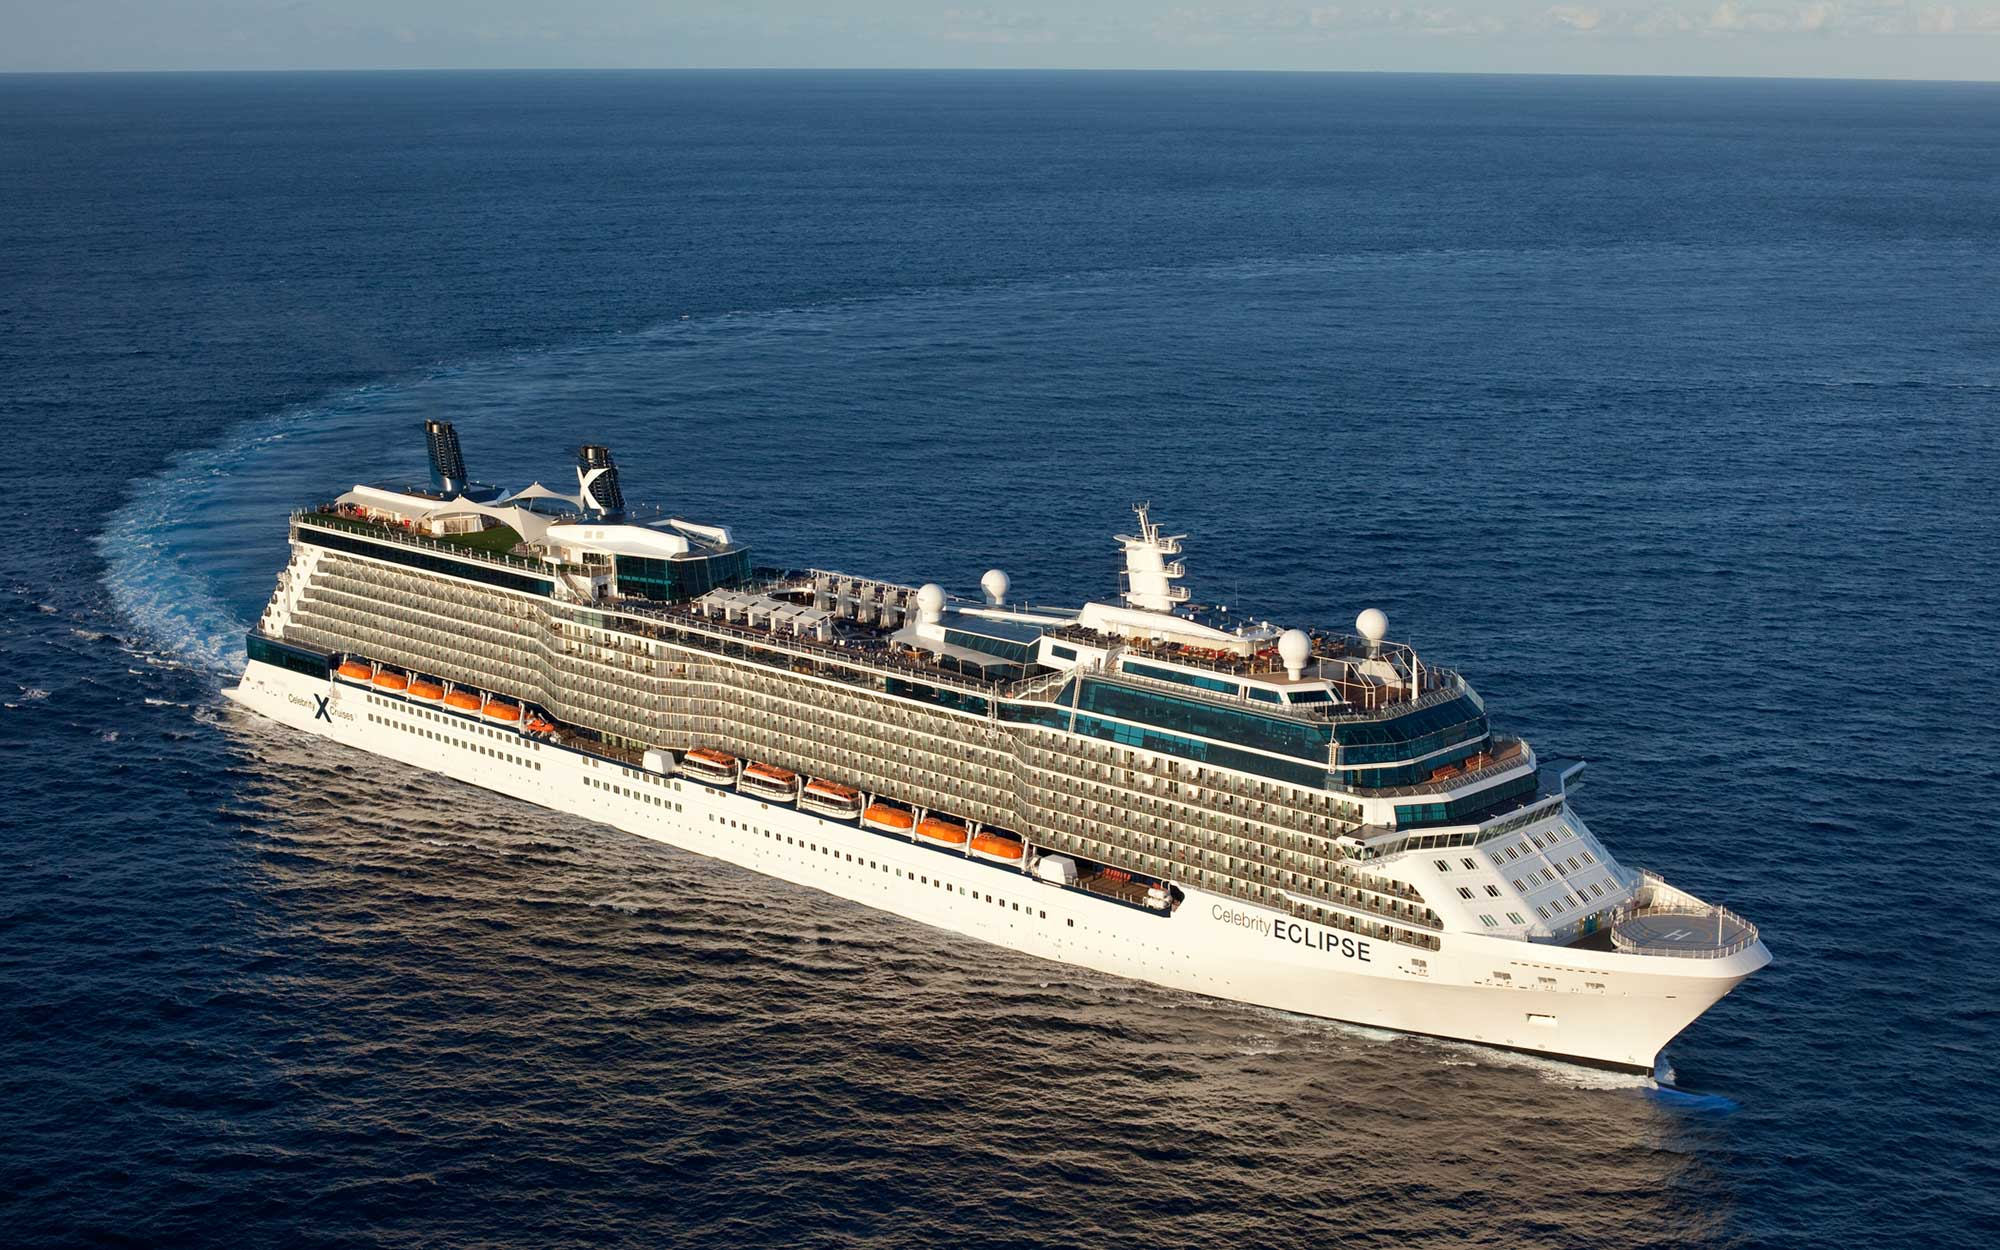 Celebrity Eclipse on 11/14/2010 off Miami shoreline